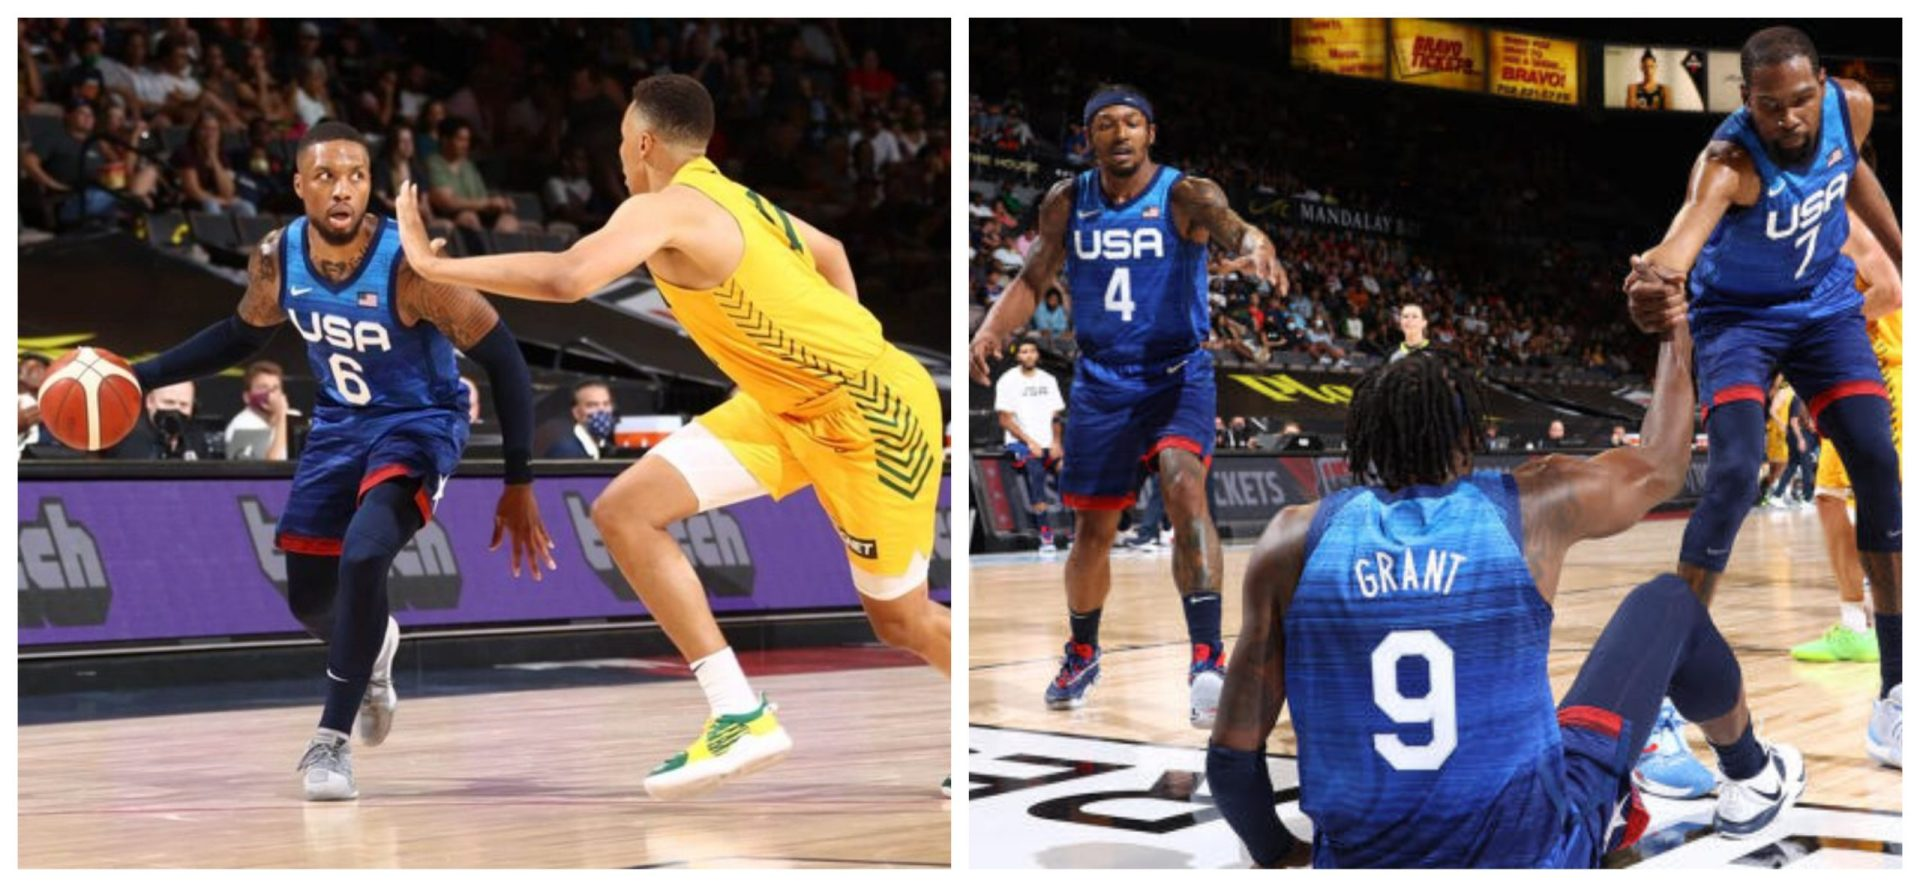 Team USA go 0-2 ahead of Olympics following another shock defeat against Australia - THE SPORTS ROOM